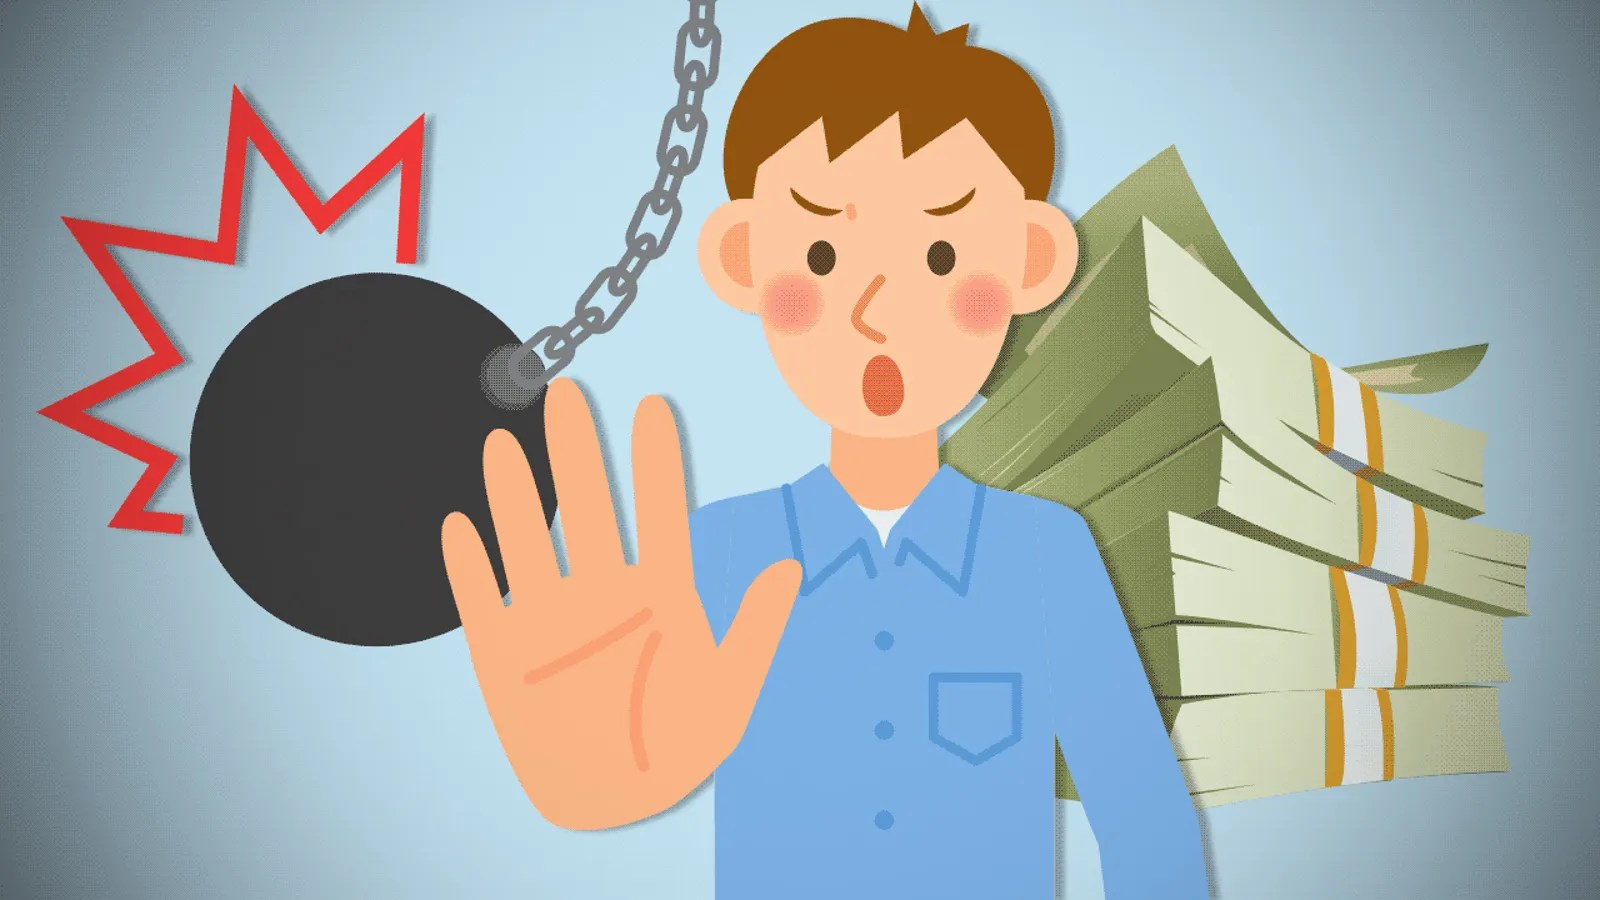 Money Saving Habits That Can Backfire And Wreck Your Finances